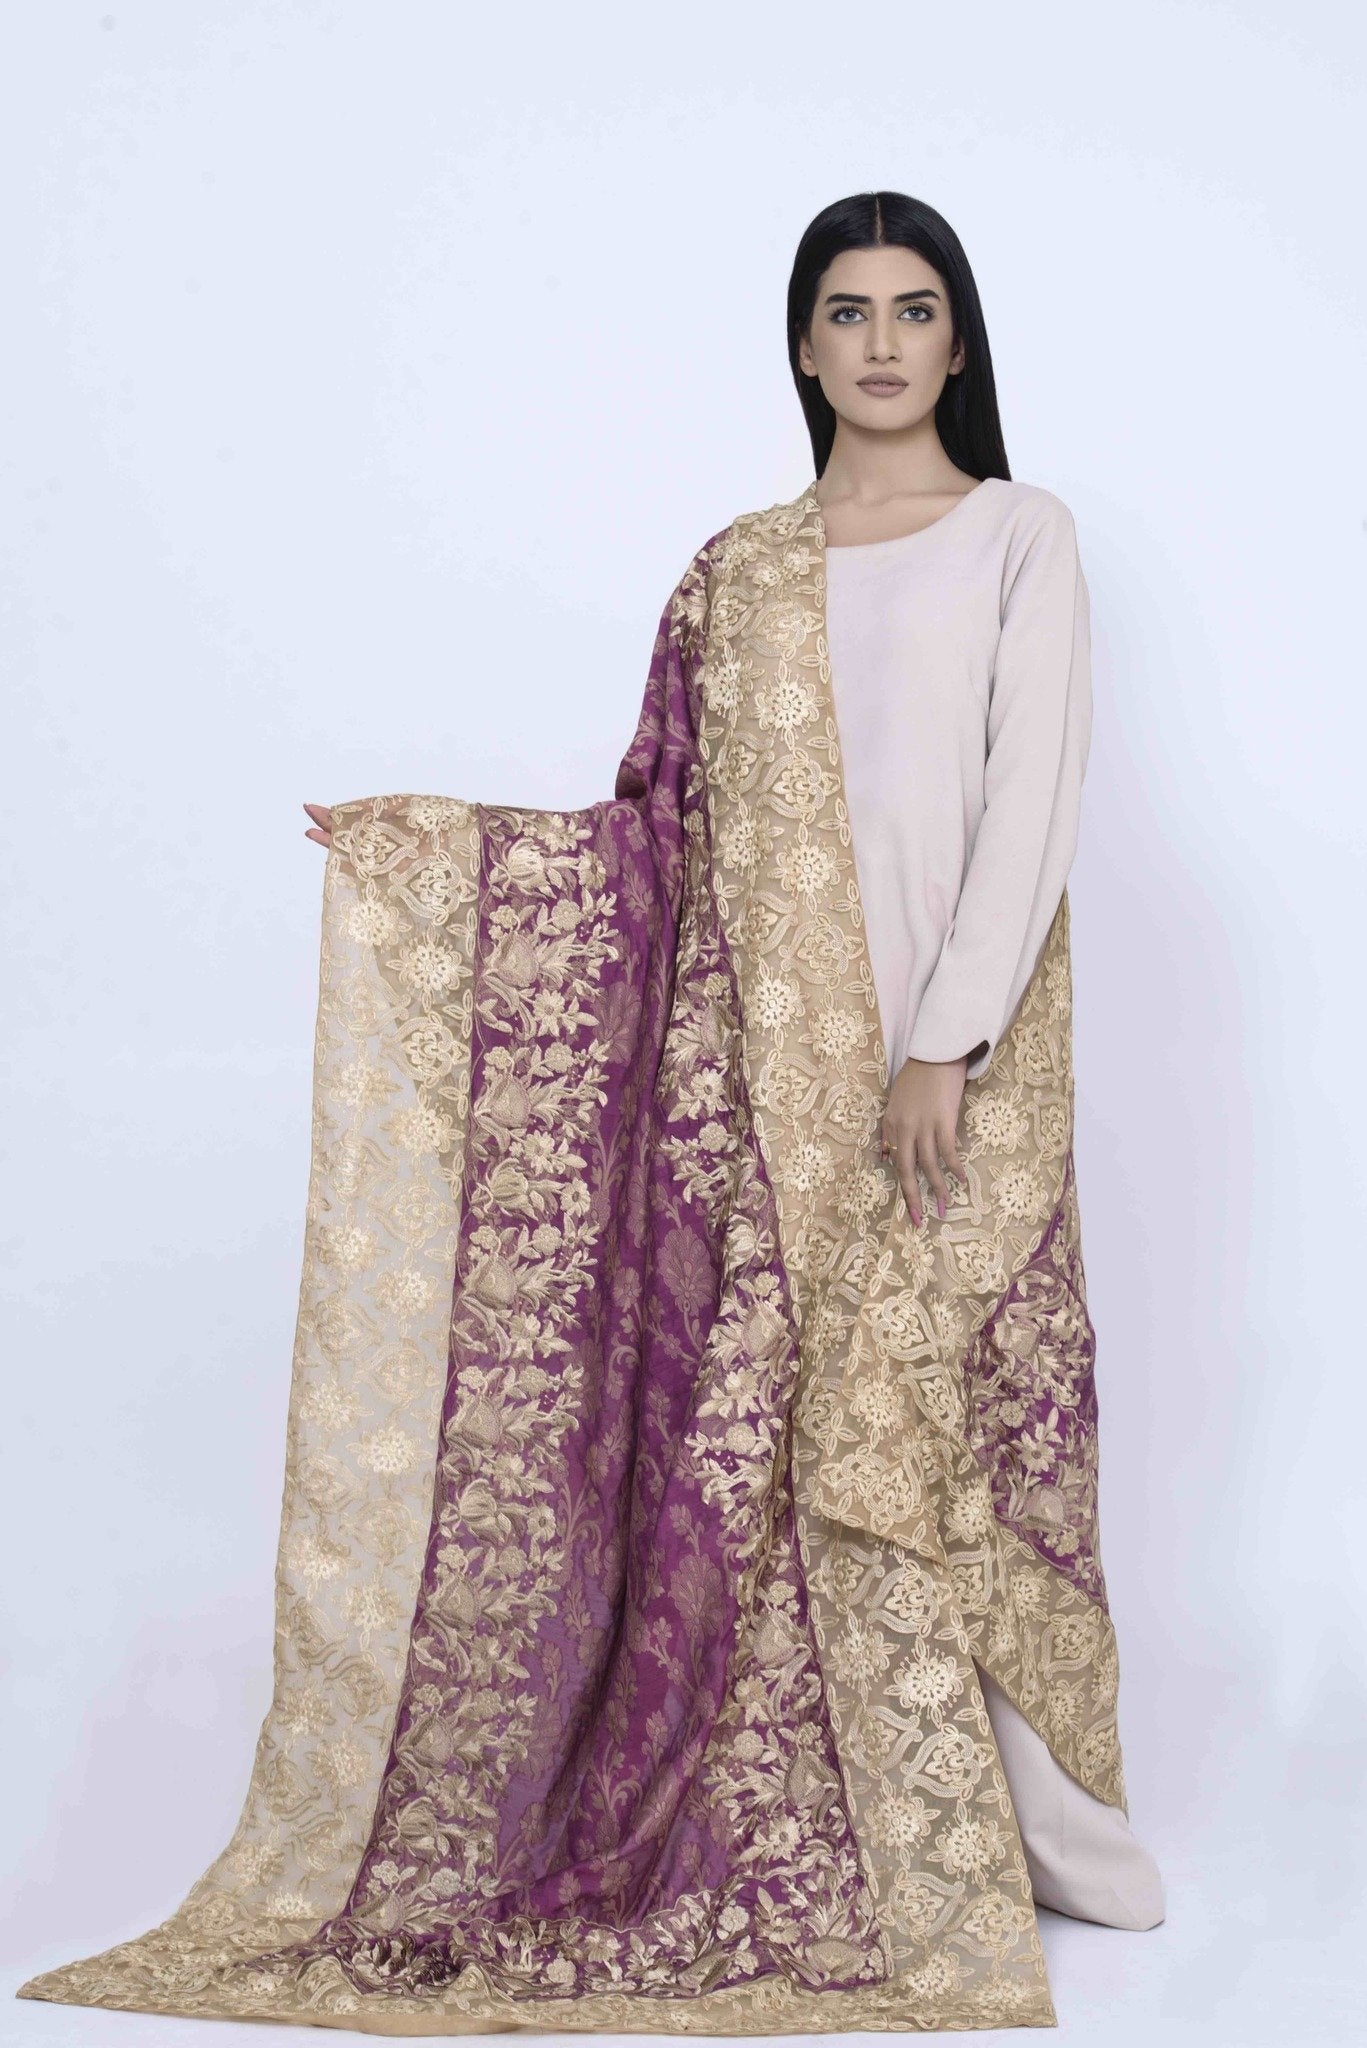 Pink Jamawar Shawl with Beige Silk Thread Embroidary & Organza Embroided Borders